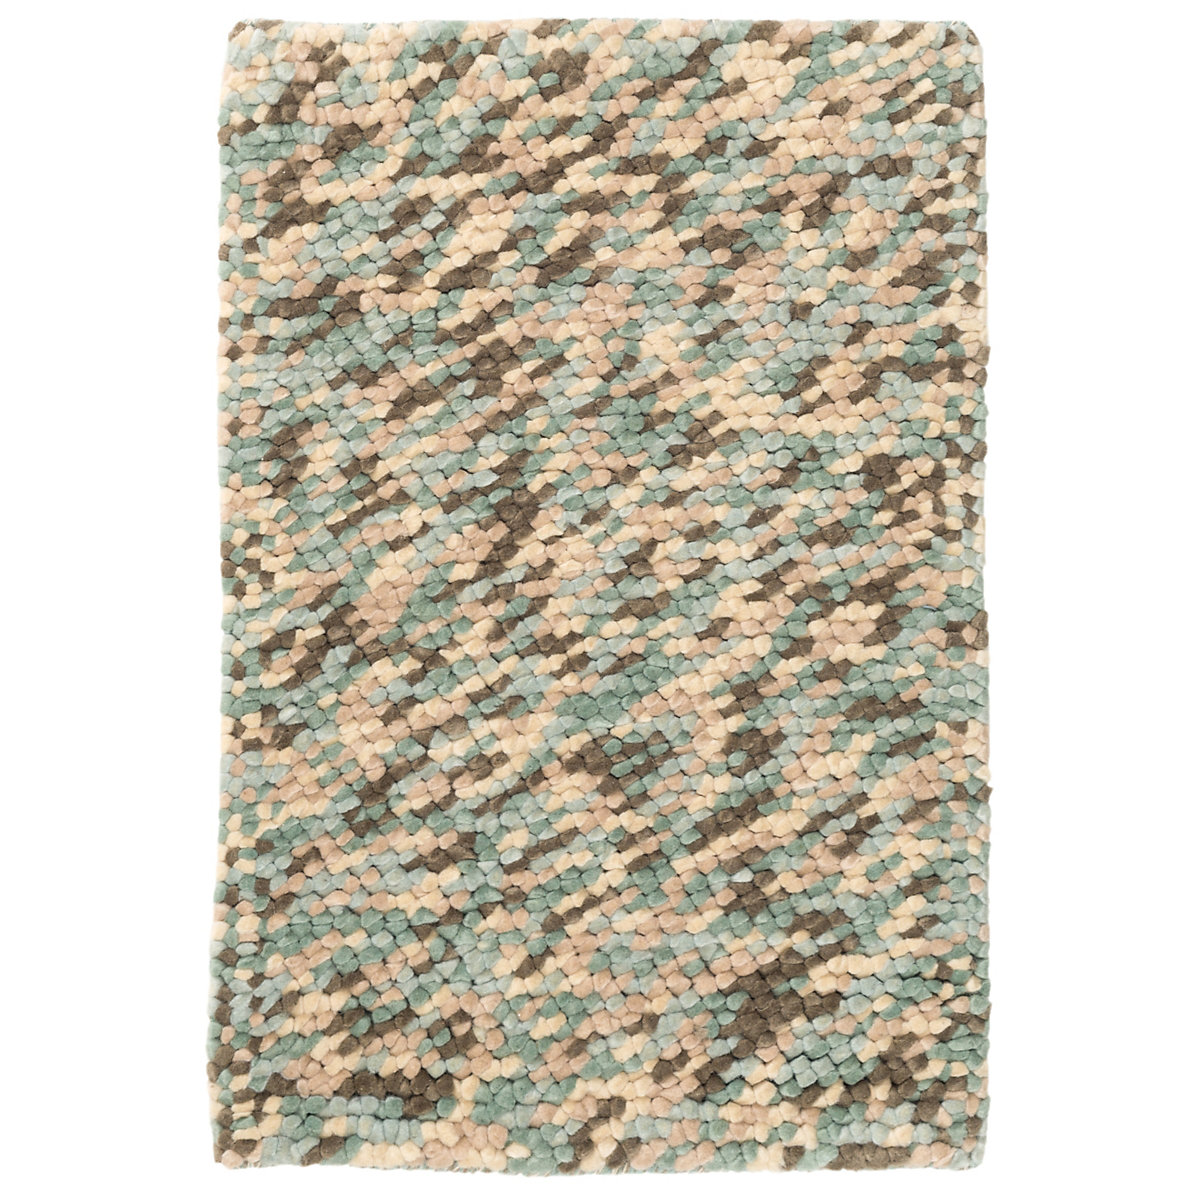 dash albert seurat seaglass wool woven rug gracious style. Black Bedroom Furniture Sets. Home Design Ideas